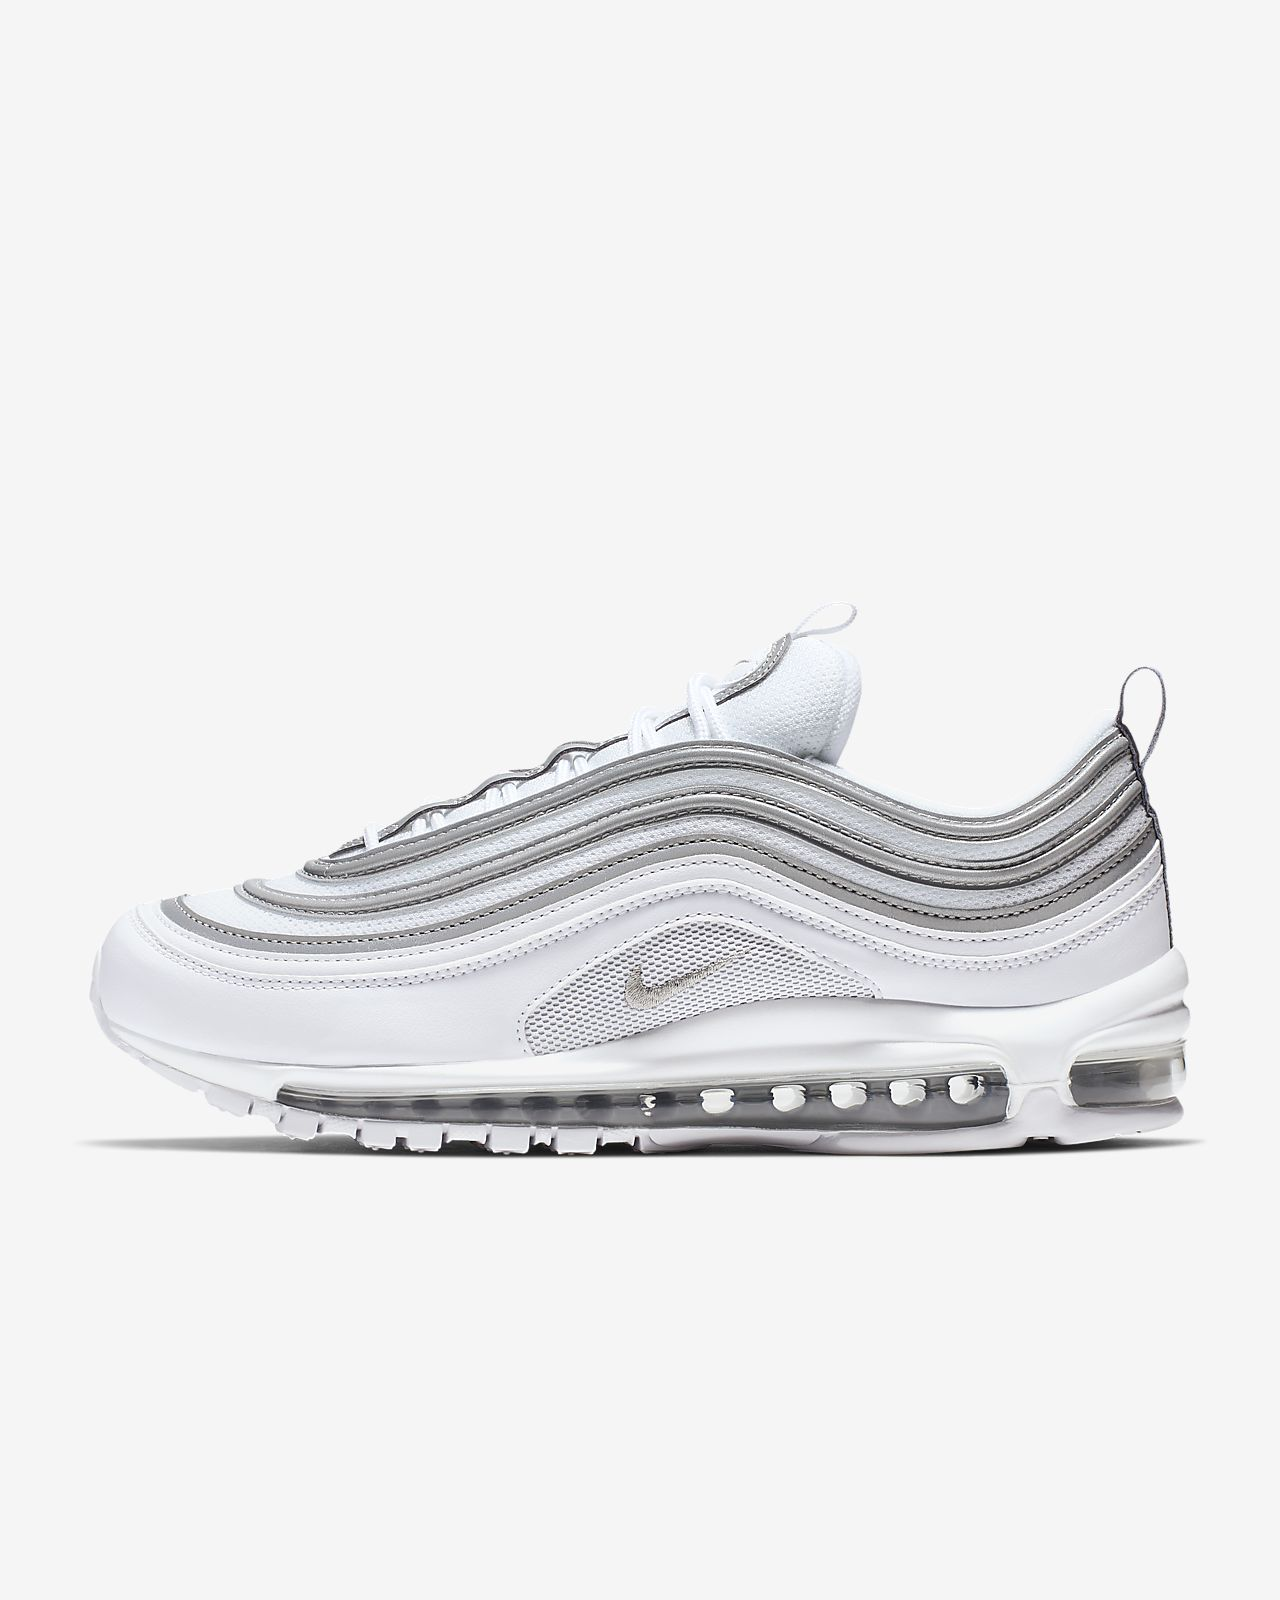 the latest d9afb 89b9e Men s Shoe. Nike Air Max 97